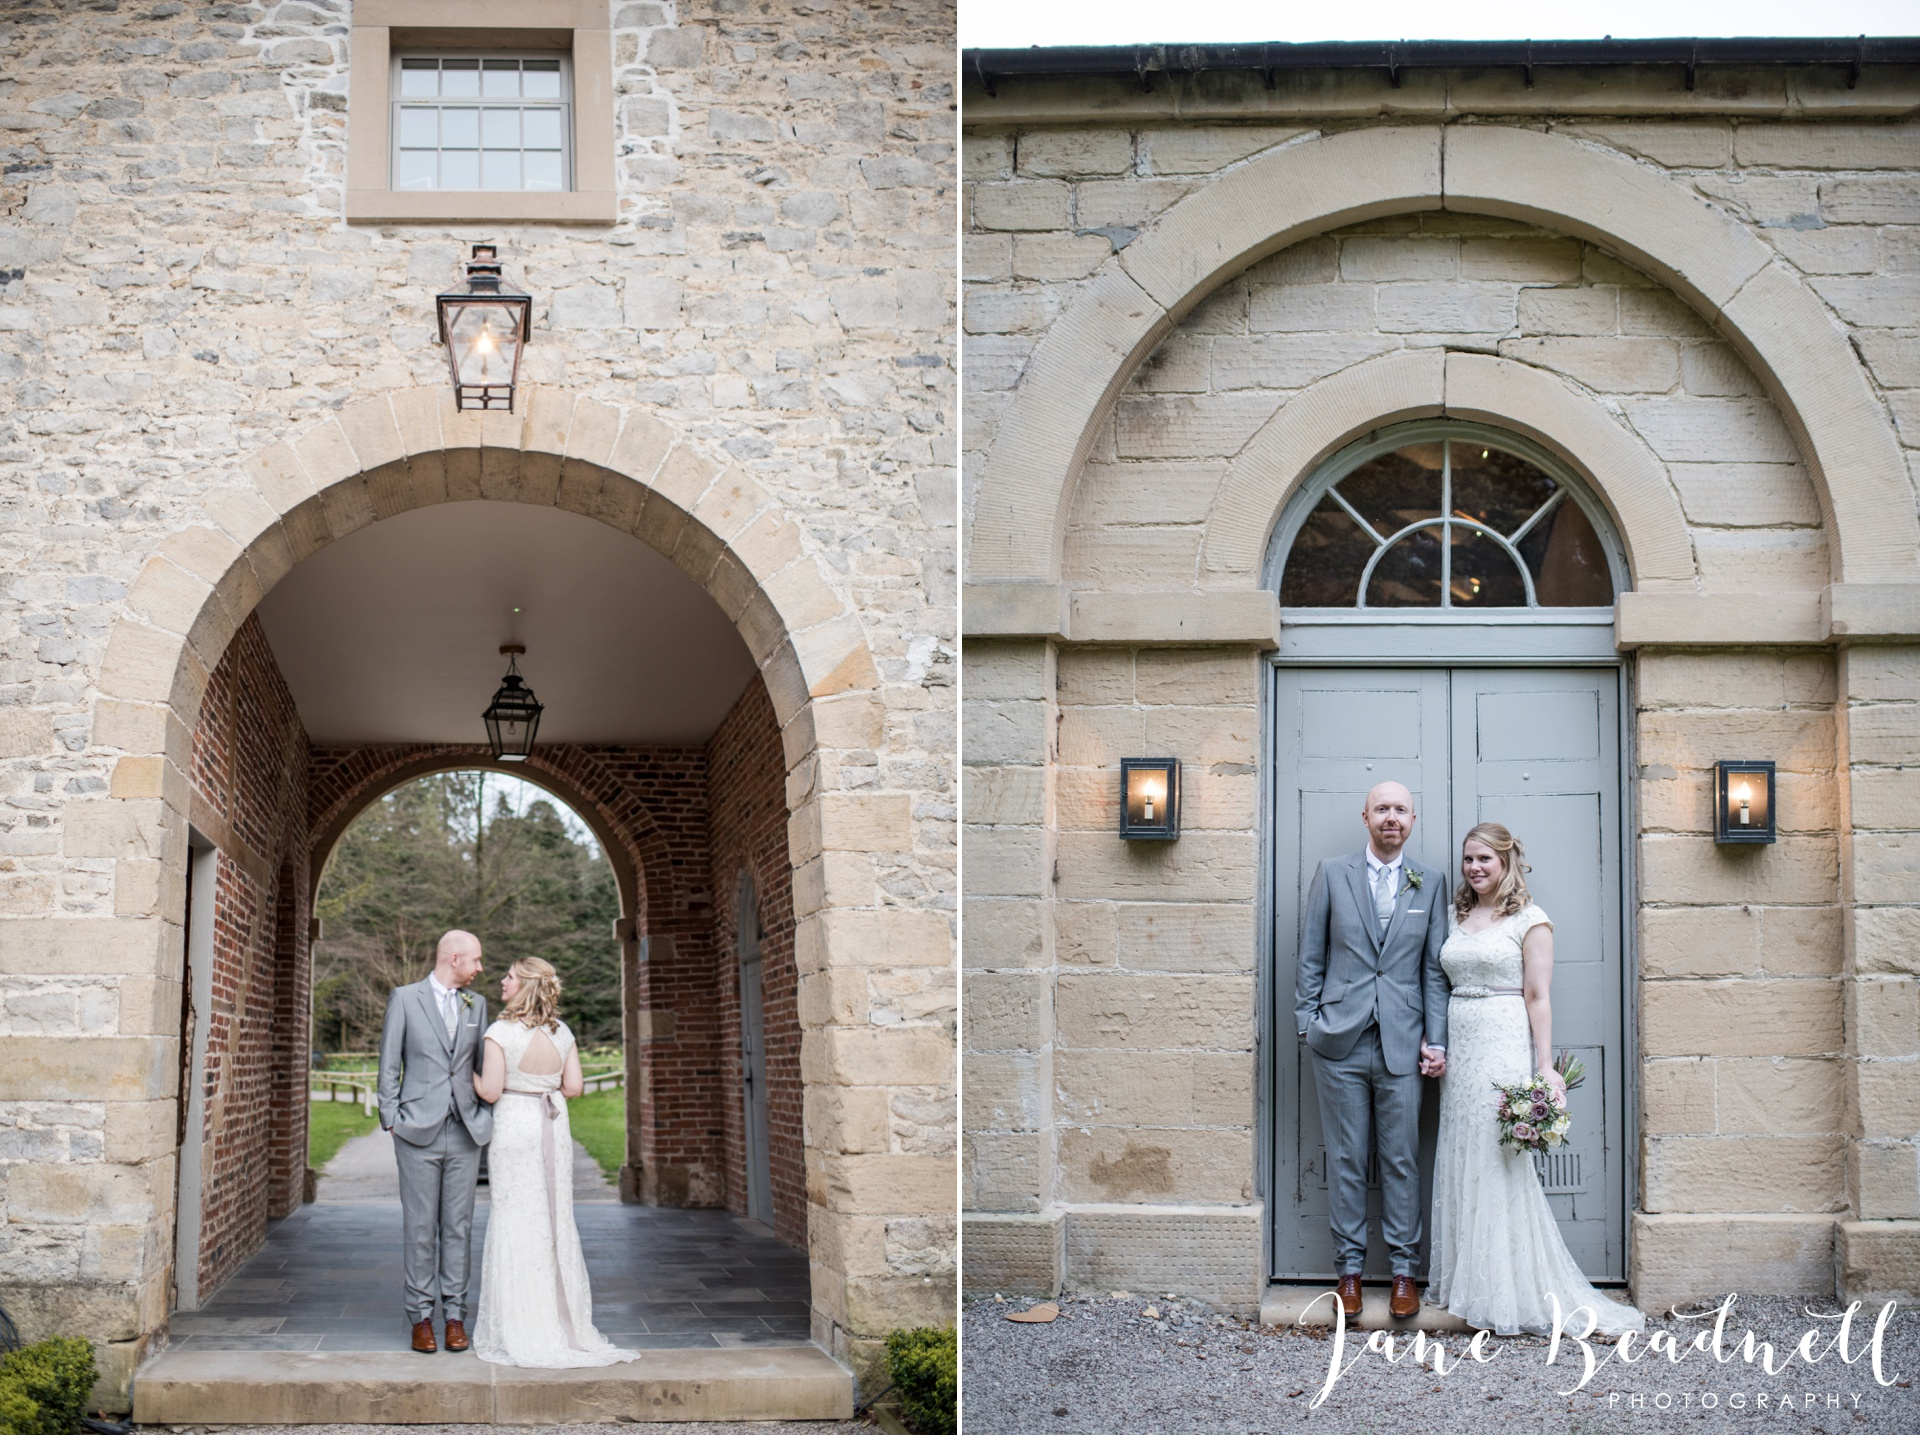 Middleton Lodge wedding photography by fine art wedding photographer Jane Beadnell_0066